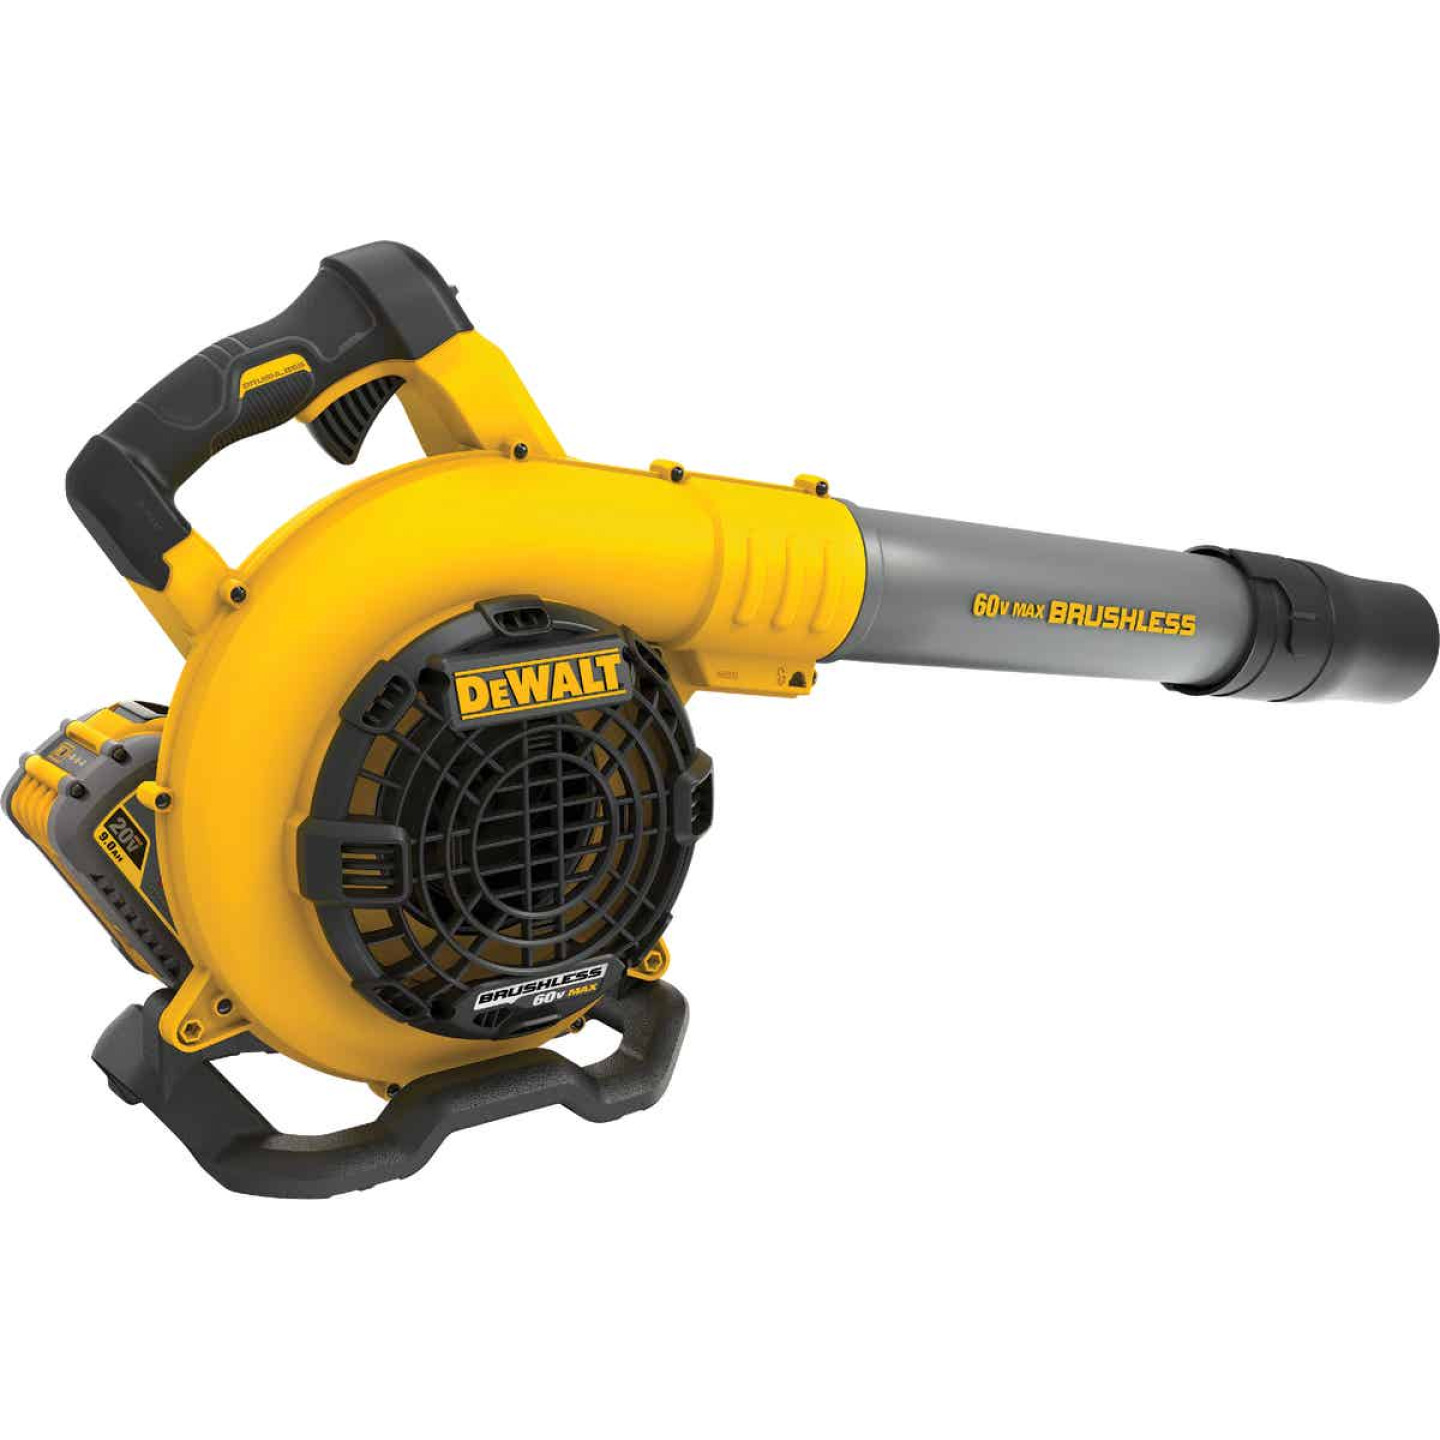 60V MAX Flexvolt Brushless Handheld Axial Blower Image 1